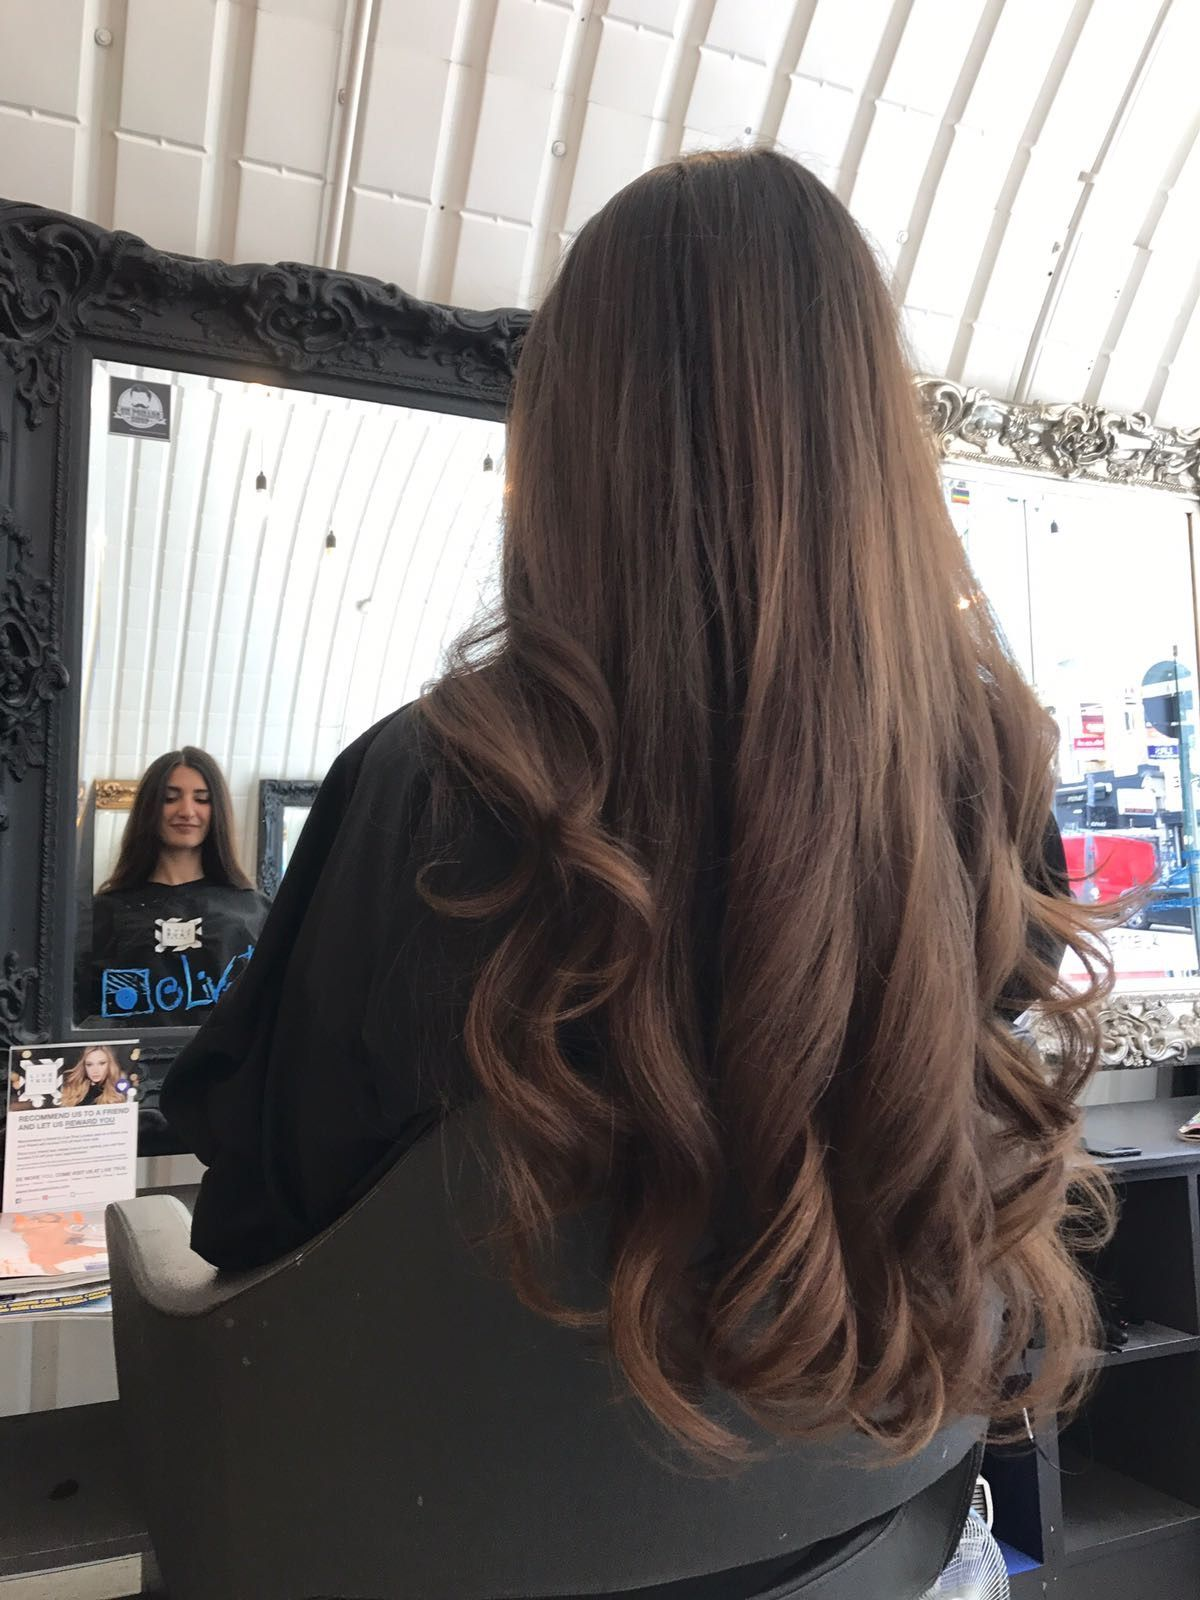 Beautiful Blow Dry At Clapham Blow Dry Hair Curls Curls For Long Hair Hair Styles